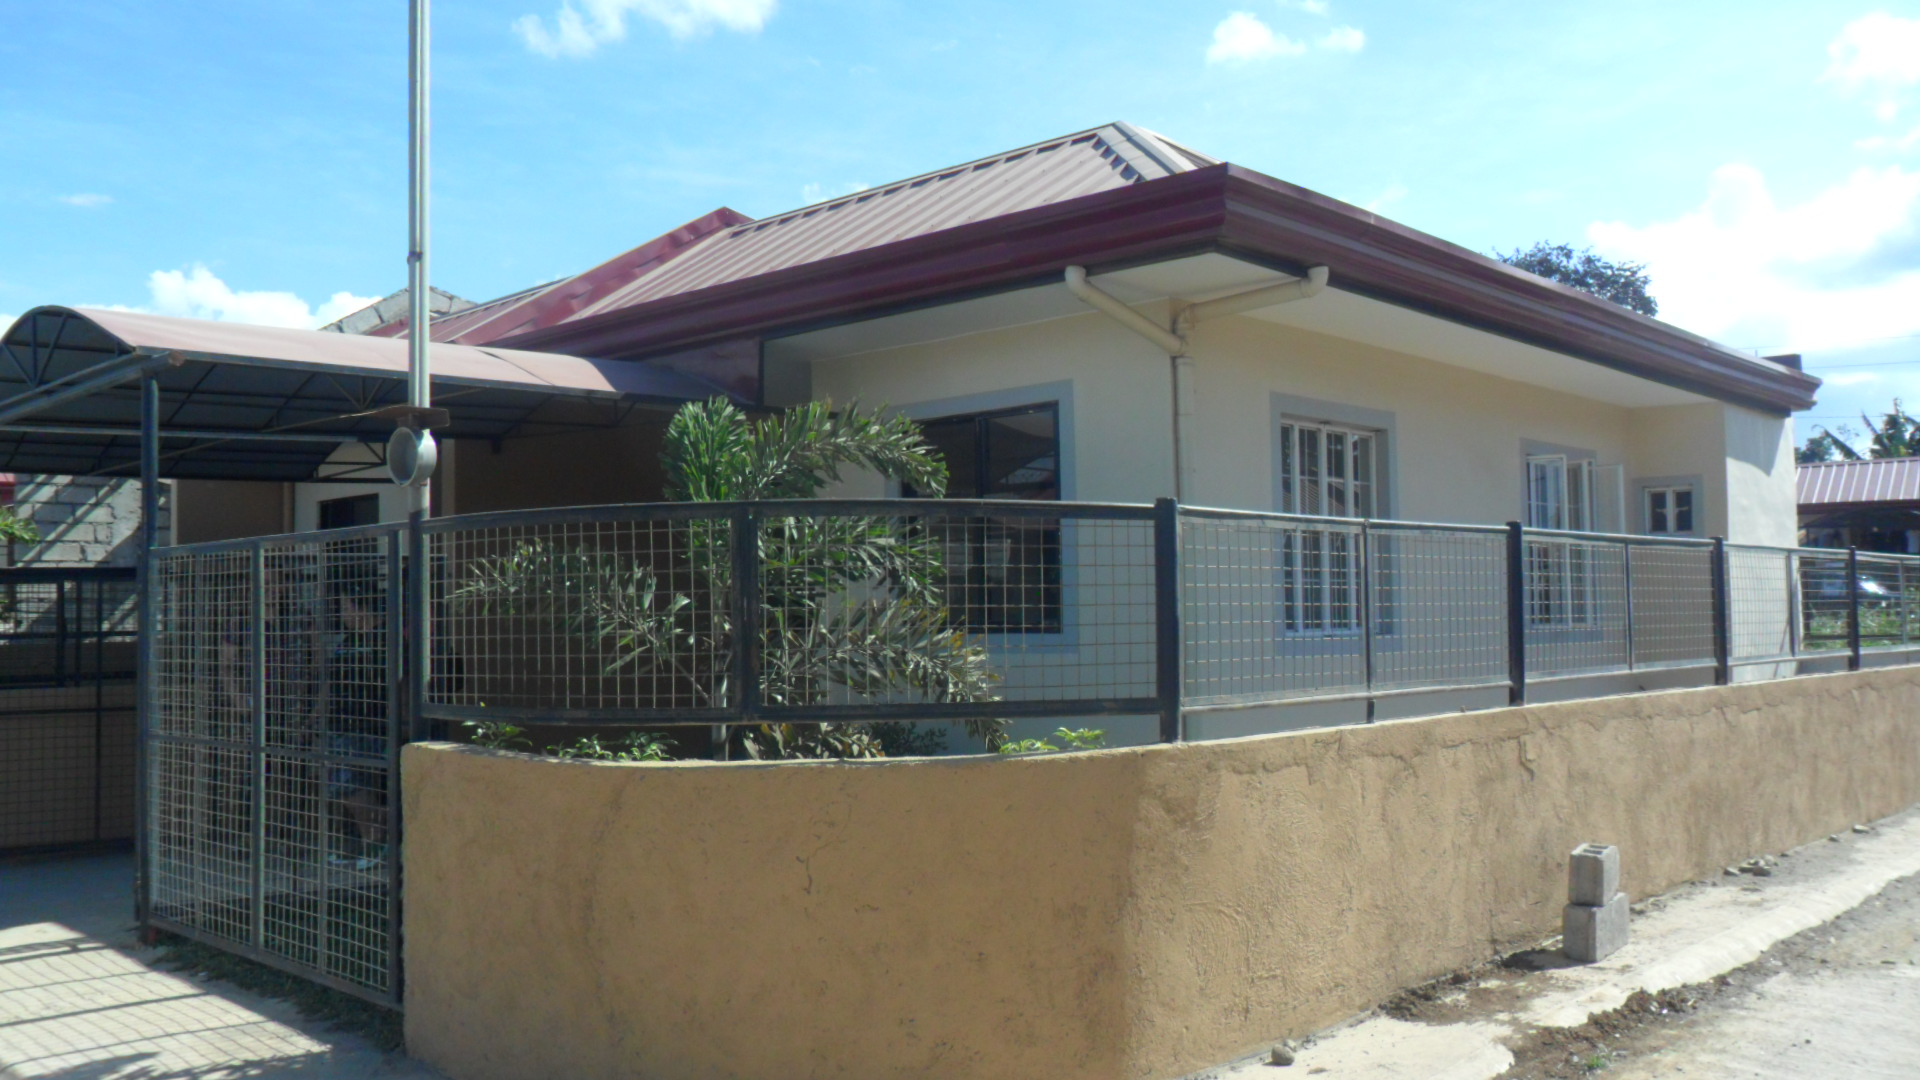 House and Lot for Sale in Tanauan City Batangas | Real Estate Property ...